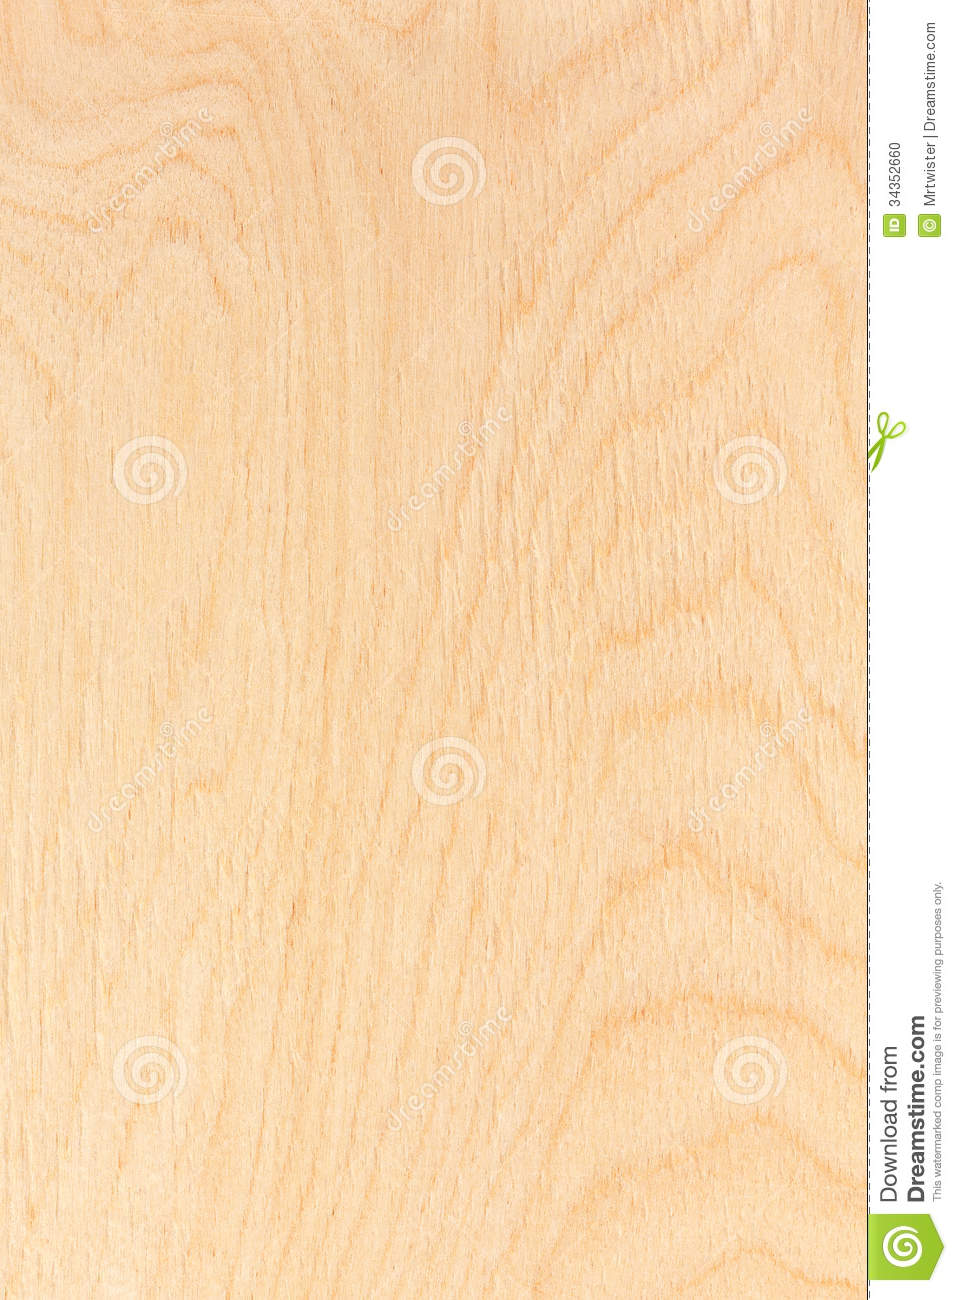 Birch plywood texture stock photo image of plywood blank for Birch wood cost